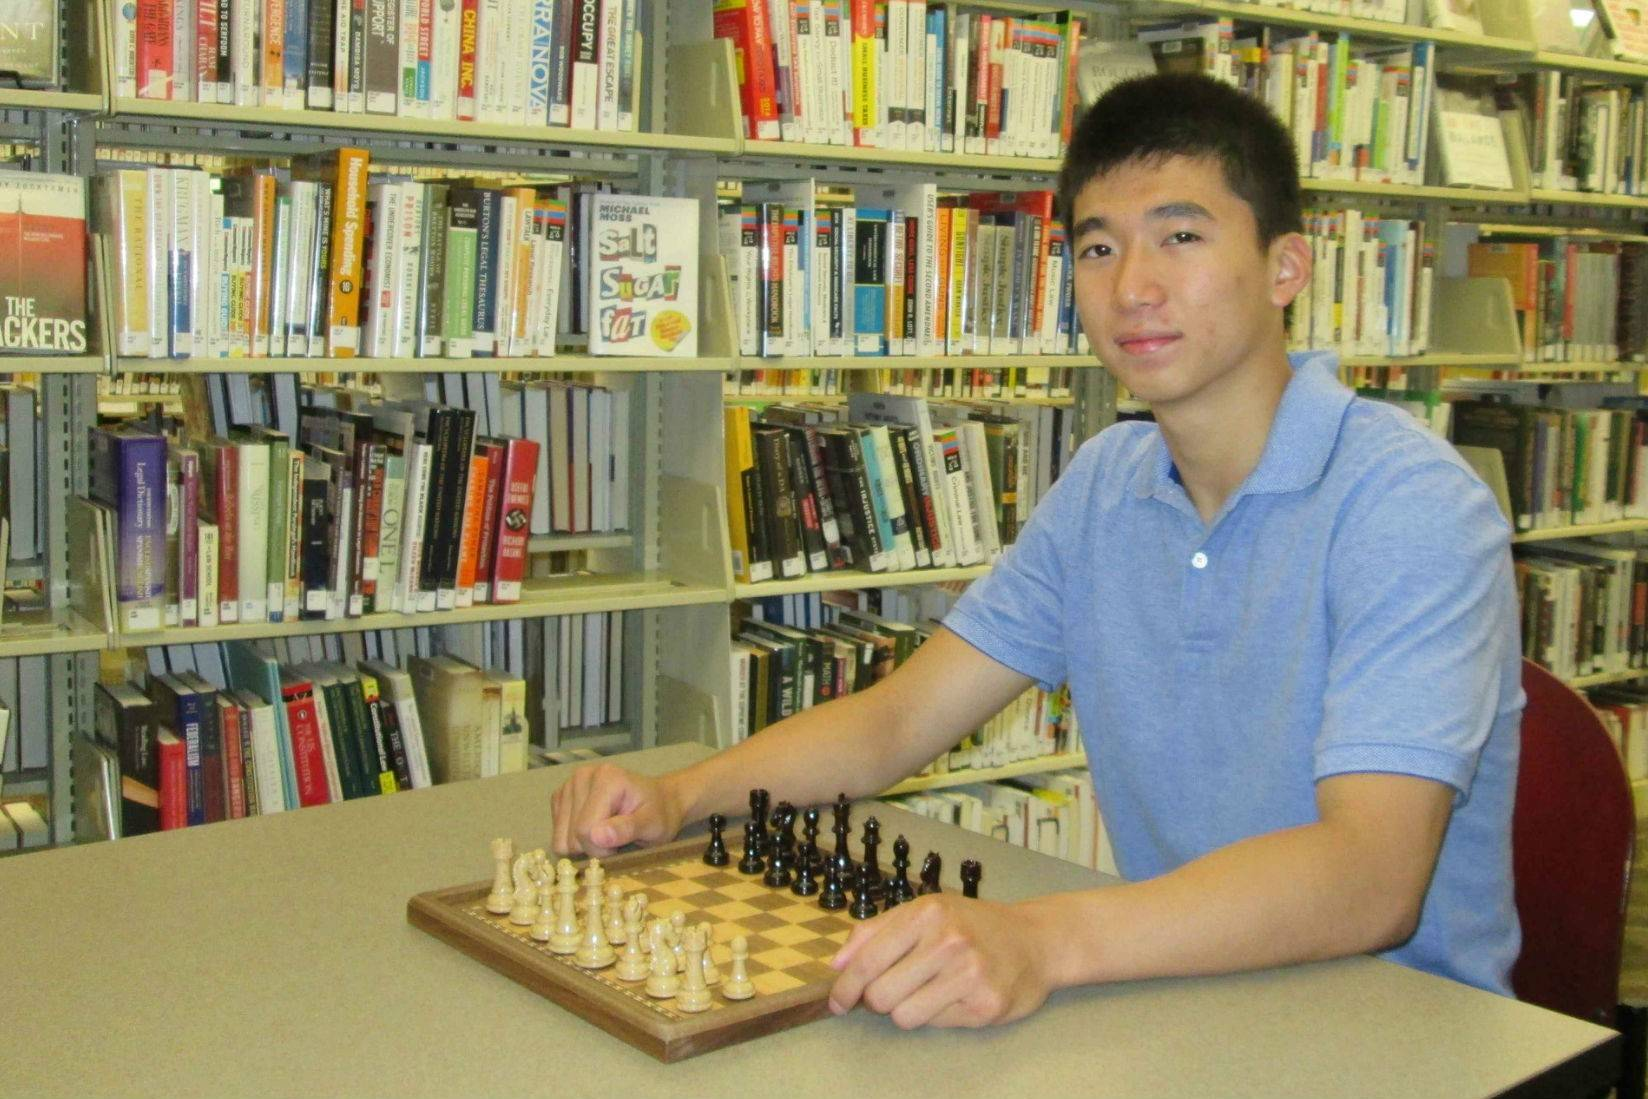 Michael Ding suggested starting a chess club at Lisle Public Library -- and library leaders jumped on the idea.